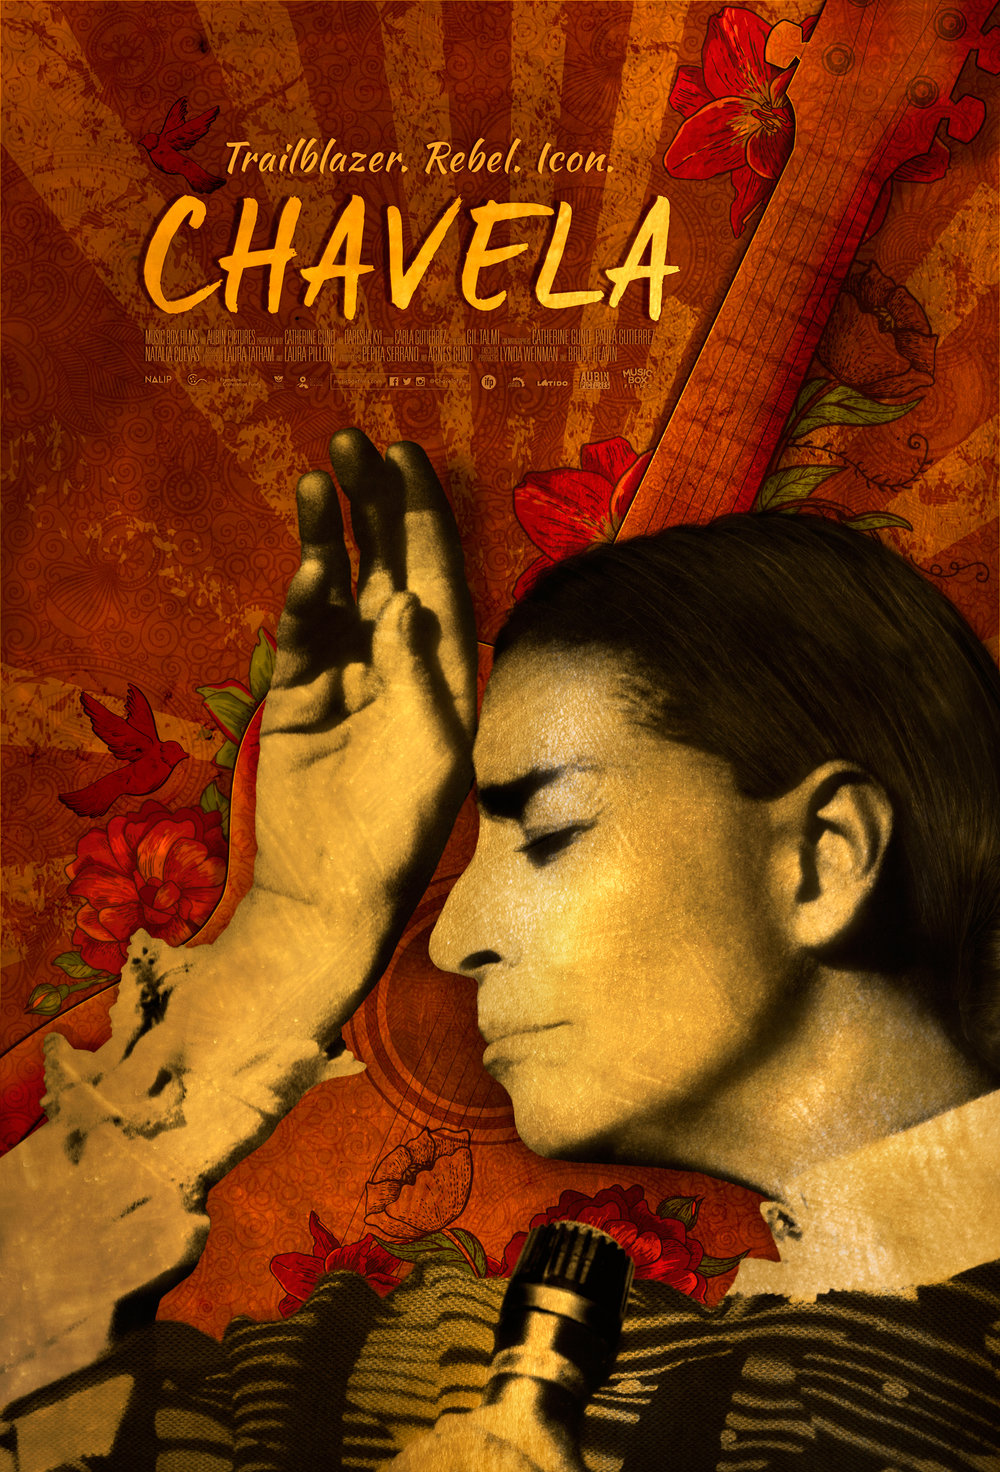 Chavela_Theatrical.jpg